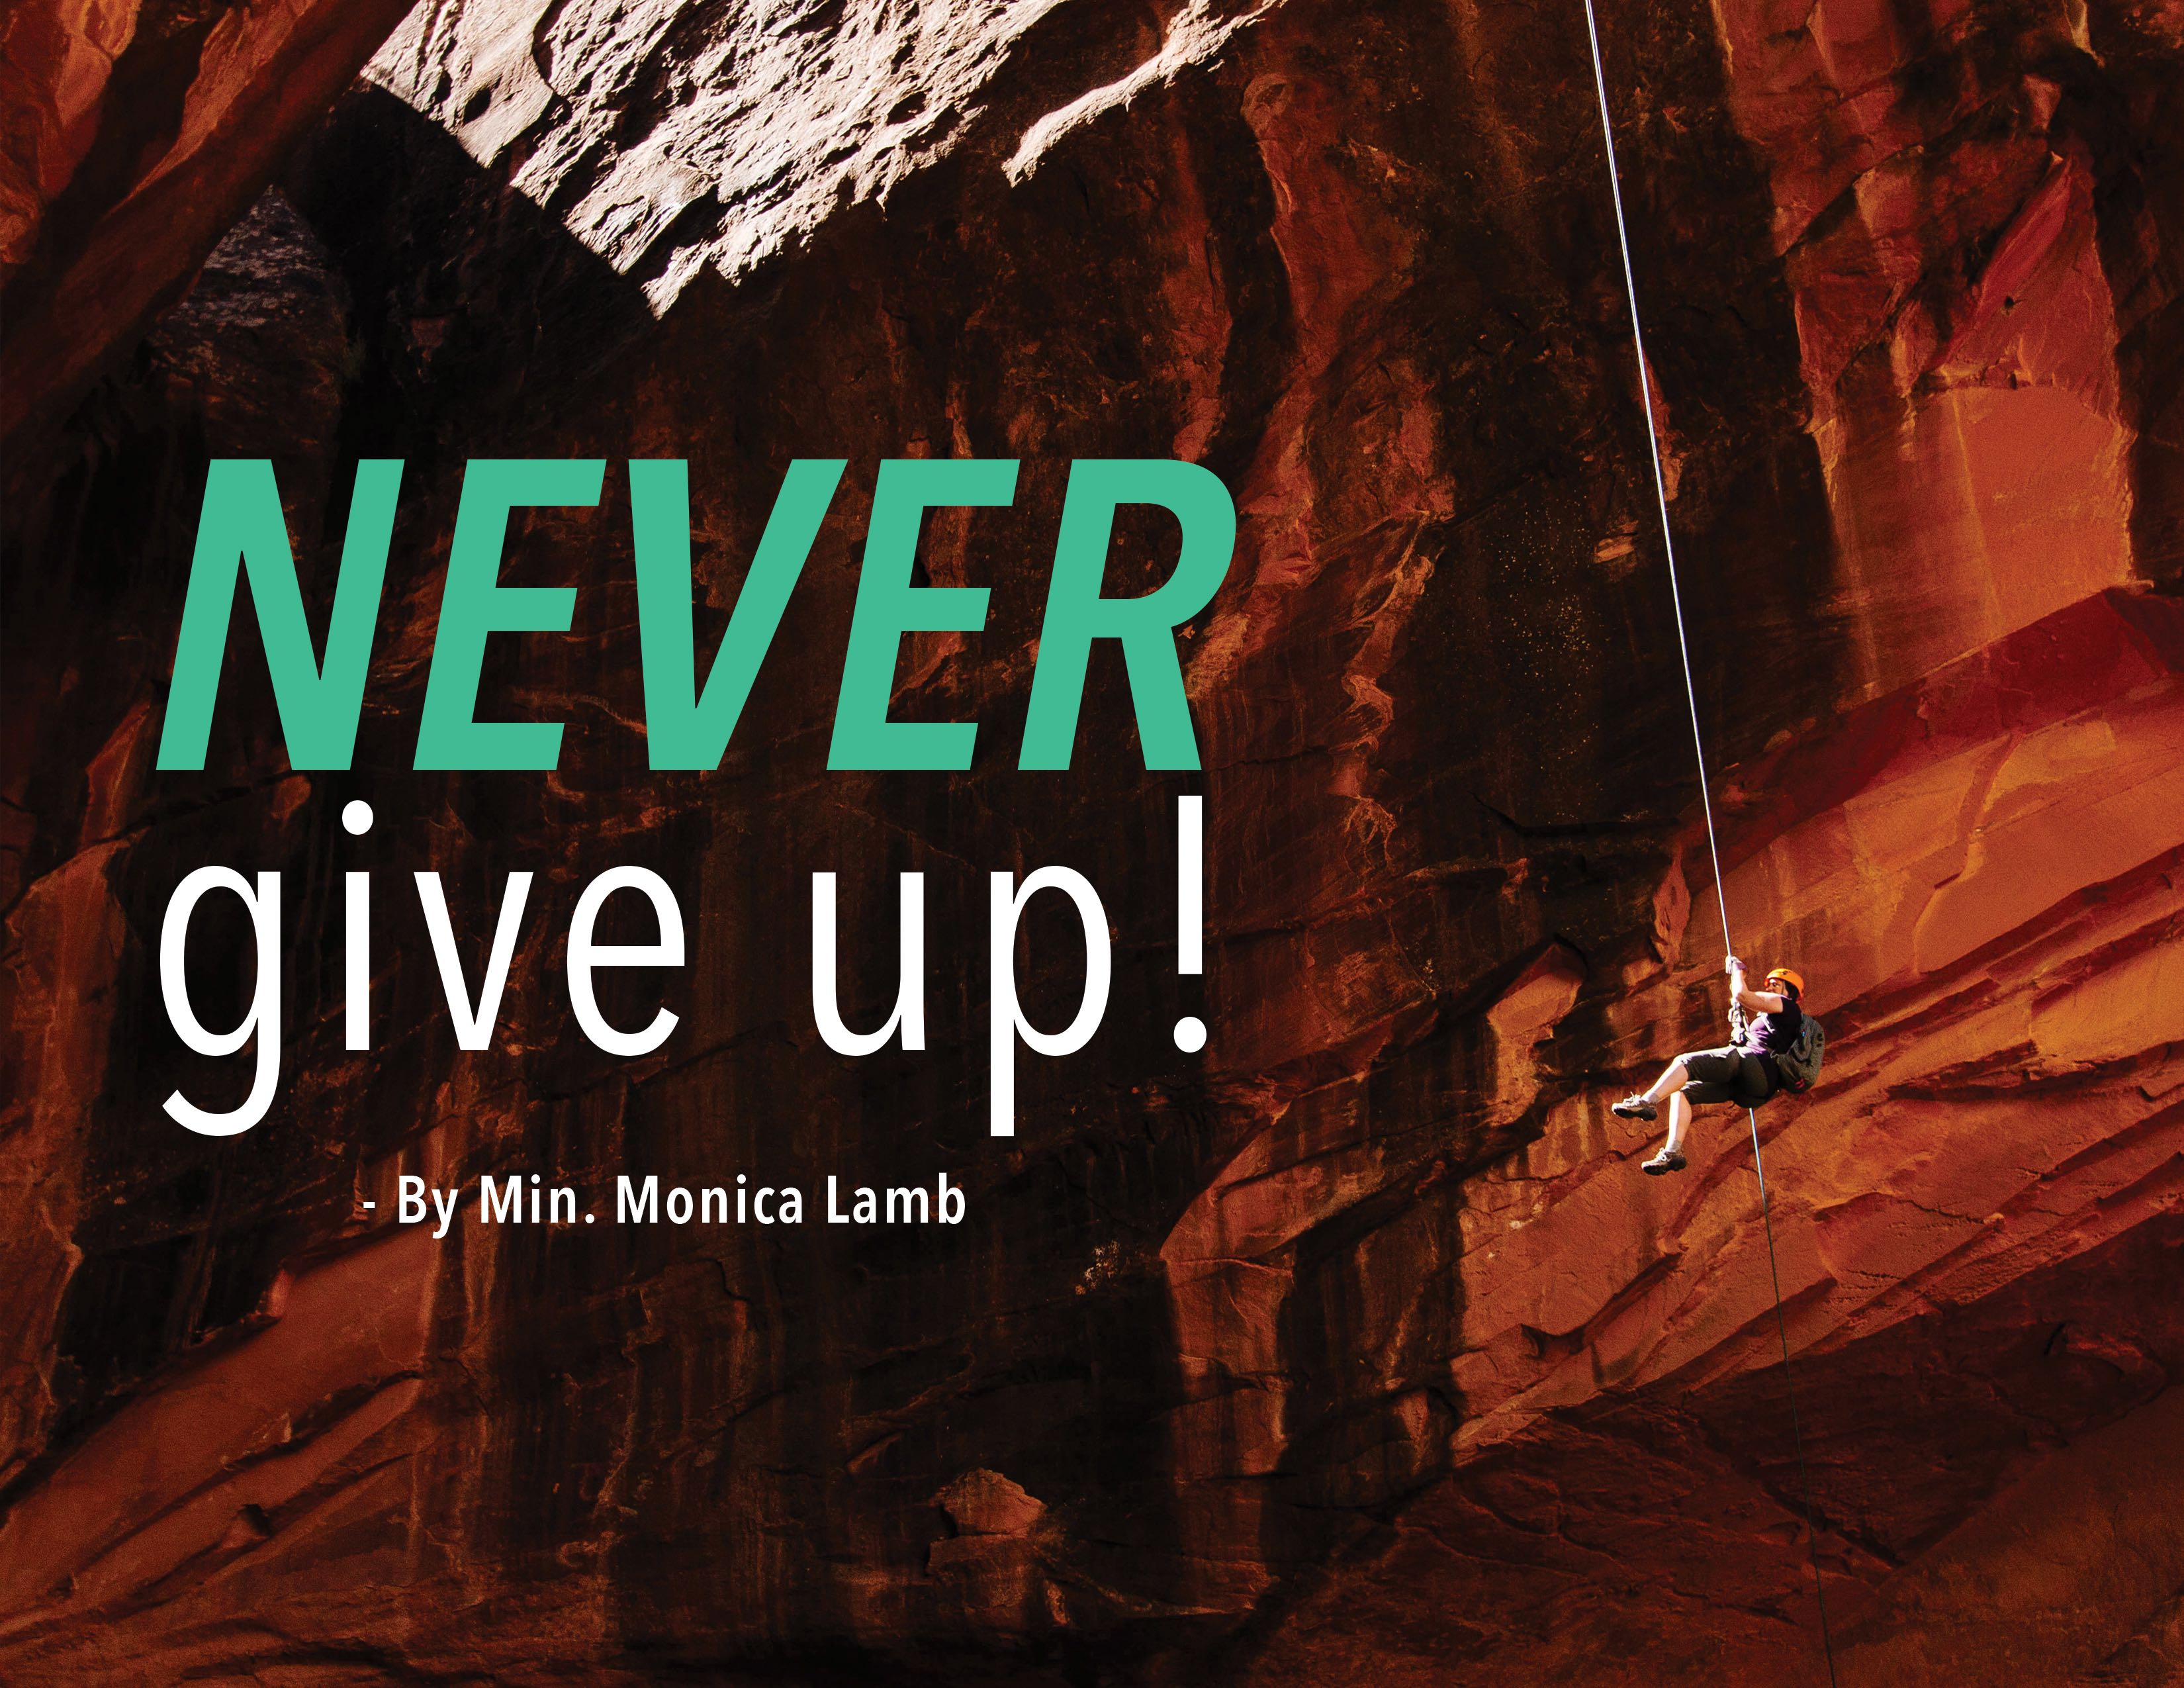 Leadership Insight - Never Give Up!